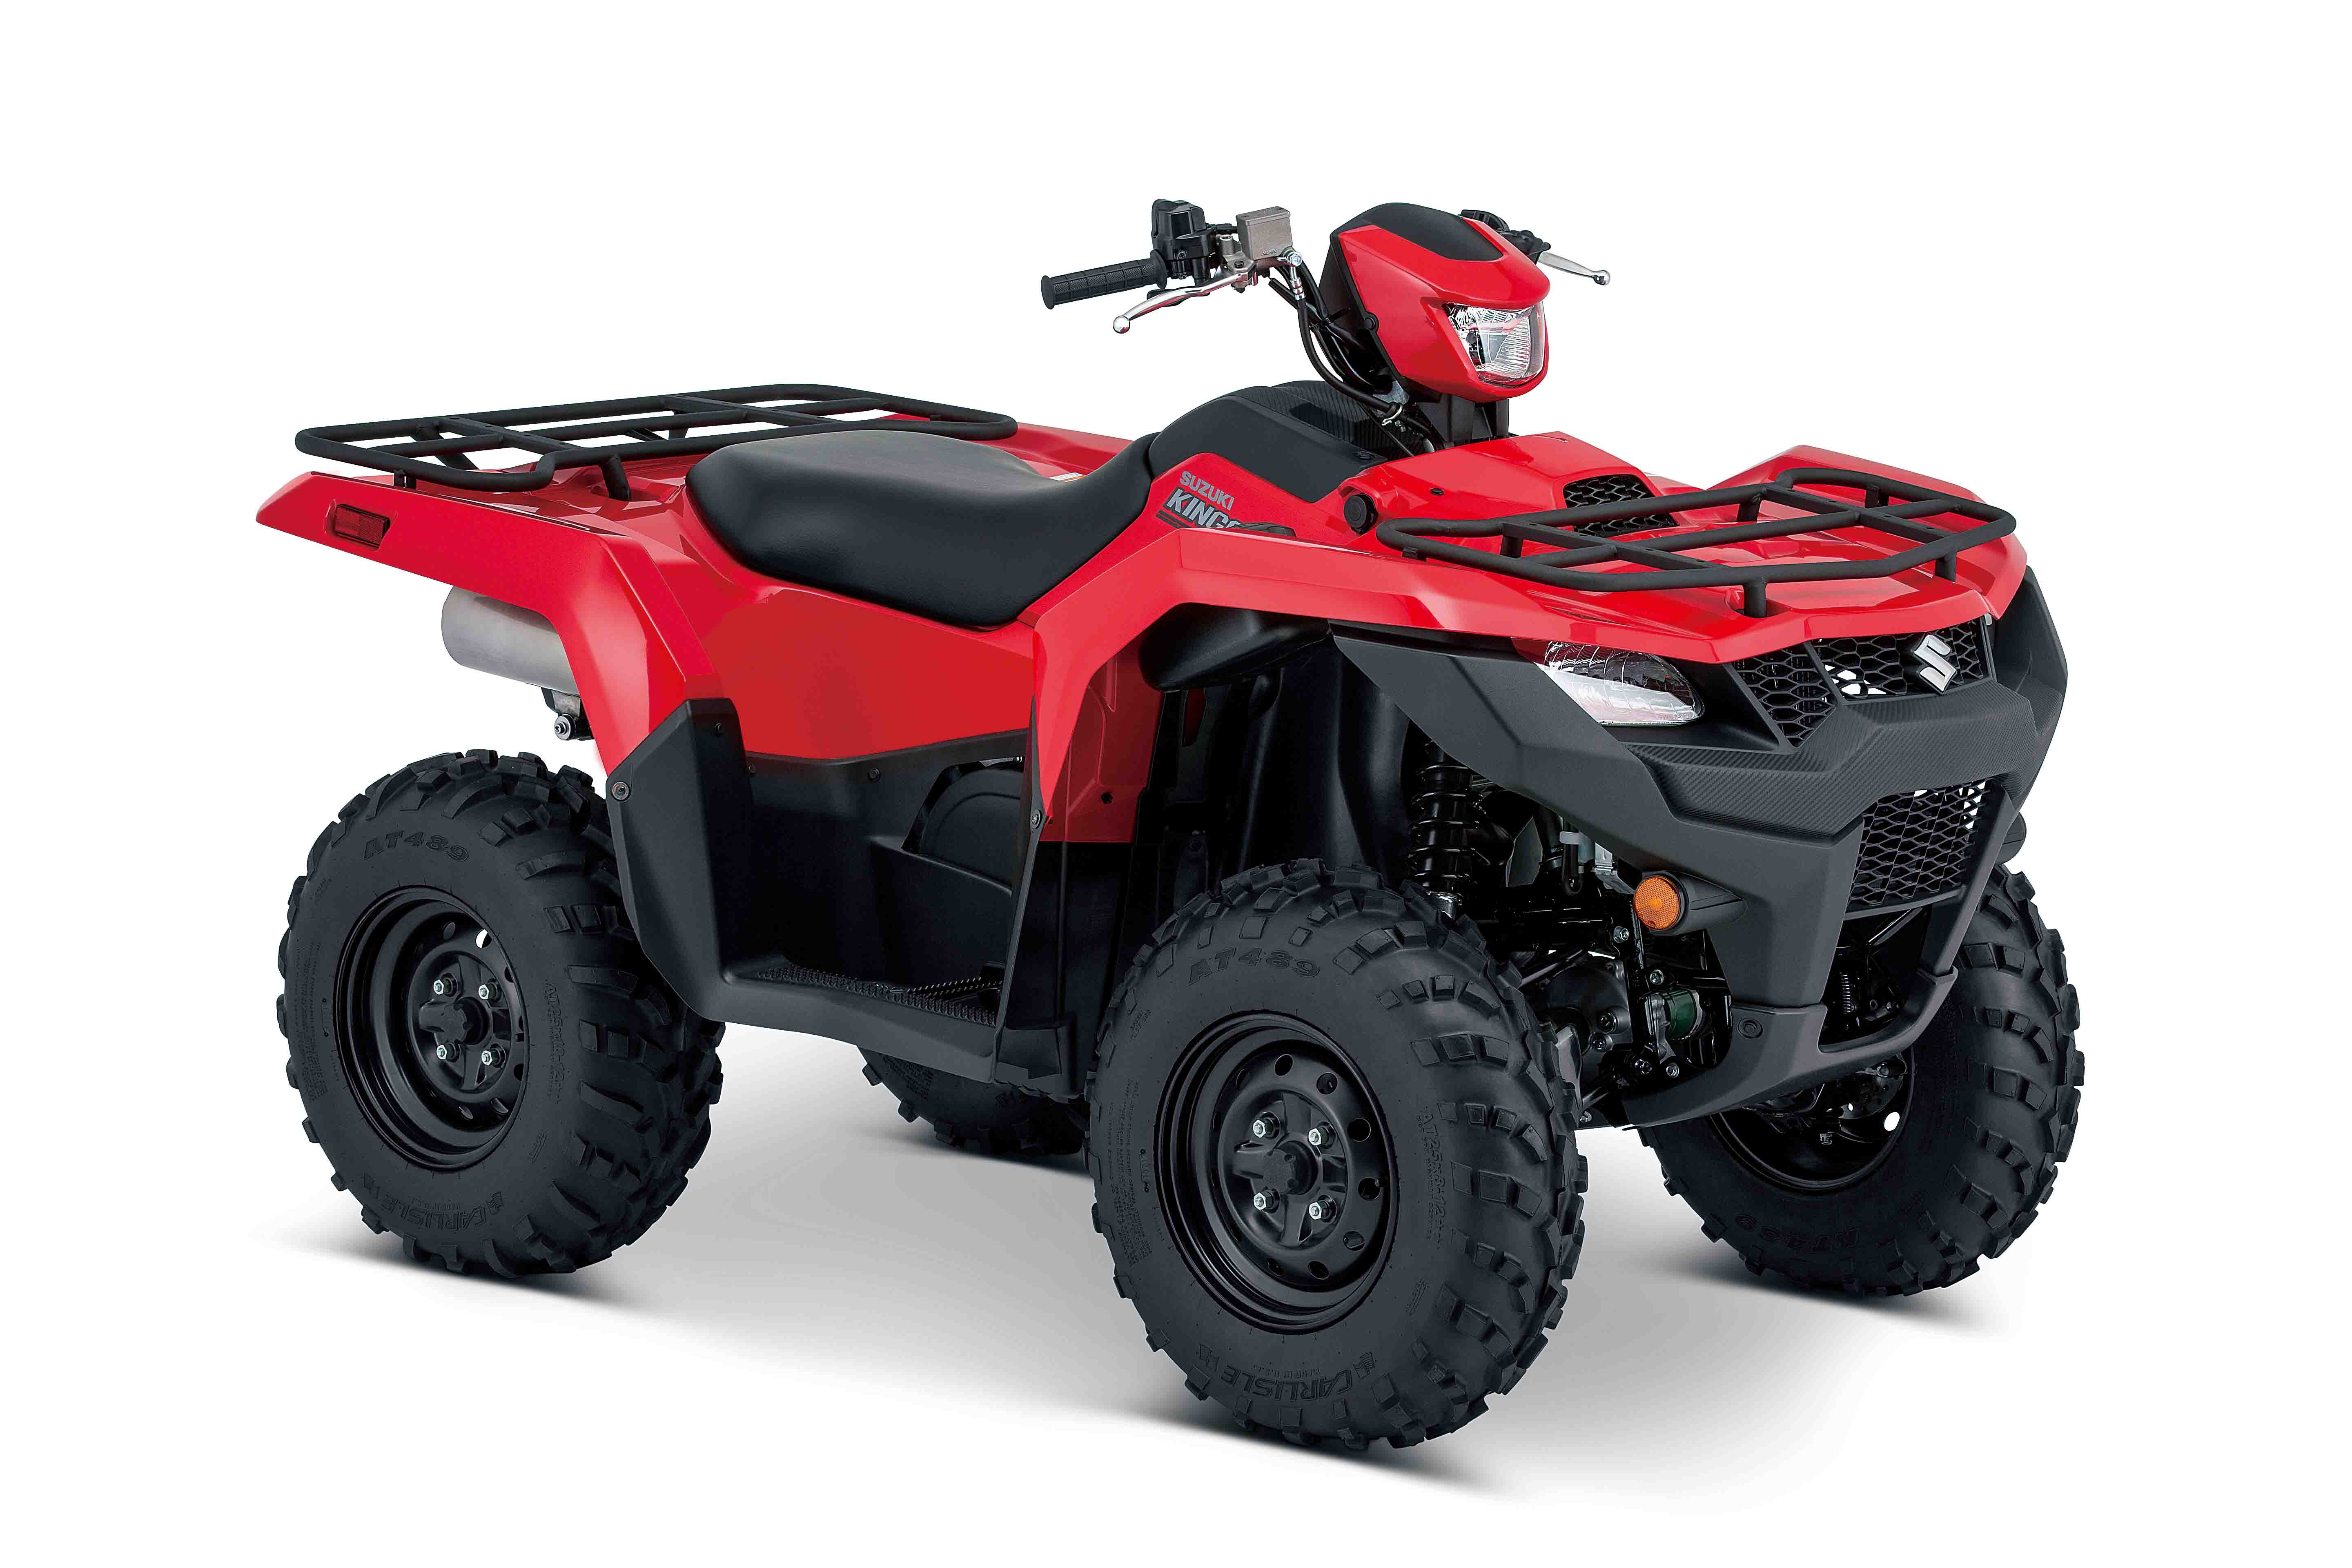 97 The Best 2019 Suzuki King Quad Specs And Review